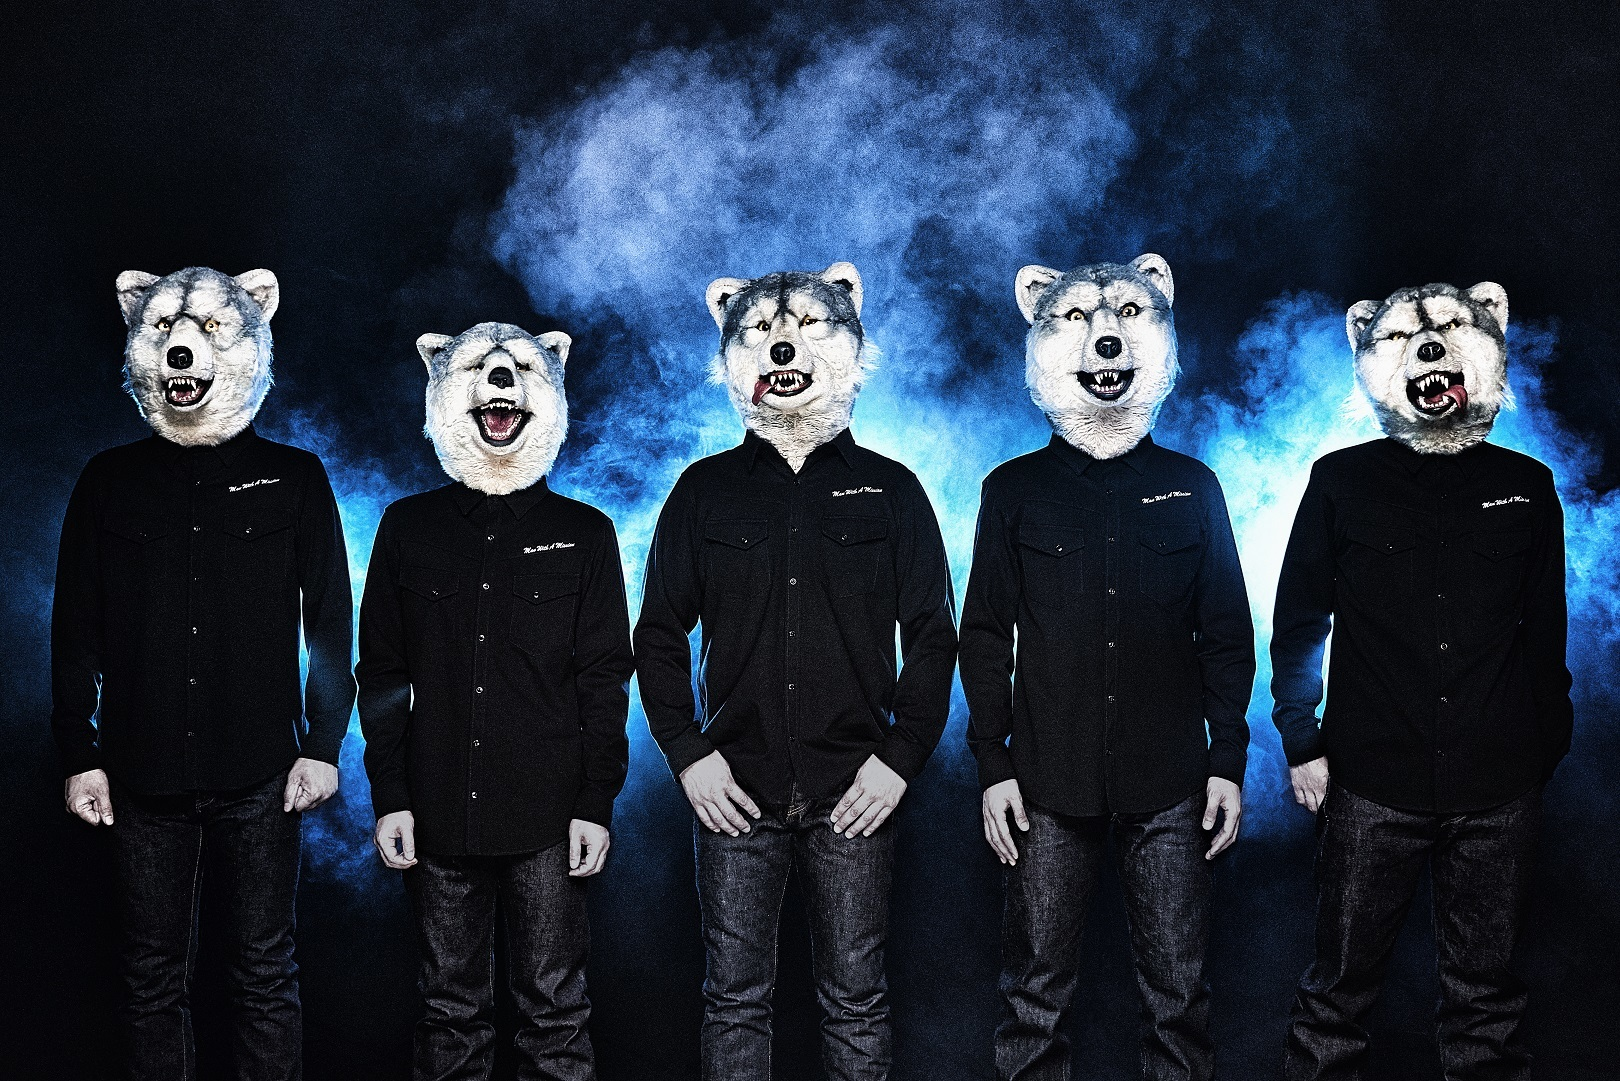 Fall Out Boy Wallpaper Pc Man With A Mission、『dog Days Tour 2017』にさいたまスーパーアリーナ公演を追加